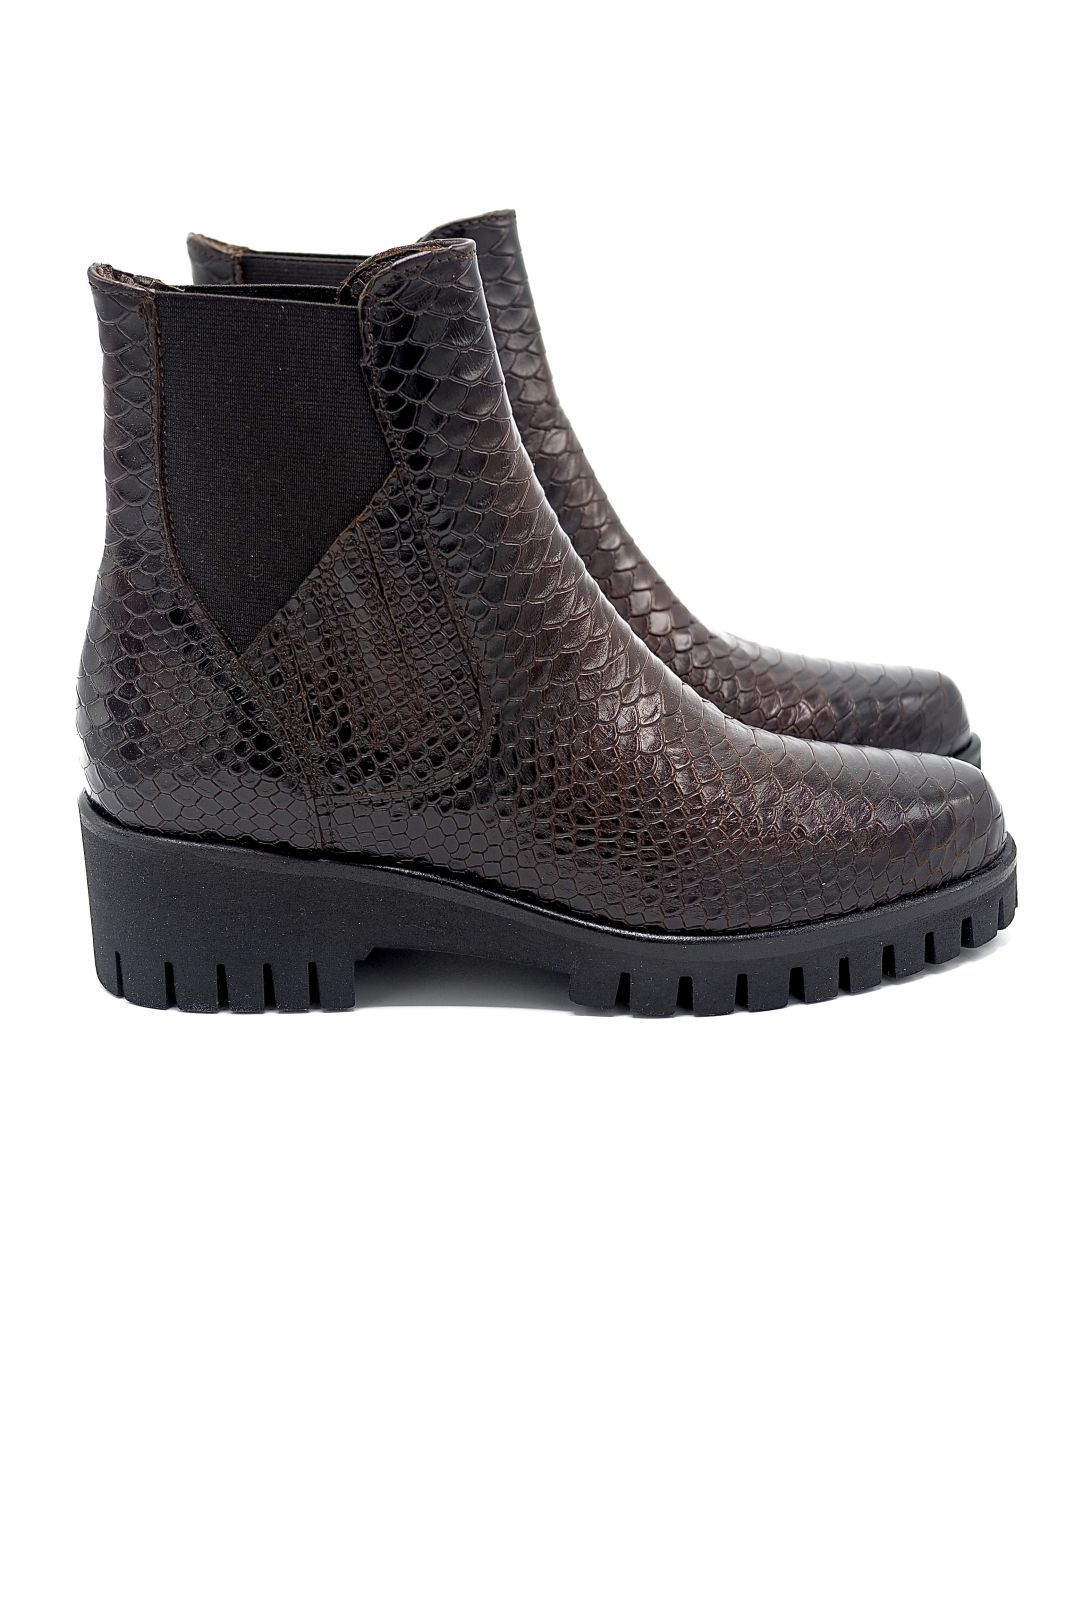 Sweet Lemon boots Brun femmes (SWL-Boots snake elastique - DAYLIN Booties python brun) - Marine | Much more than shoes